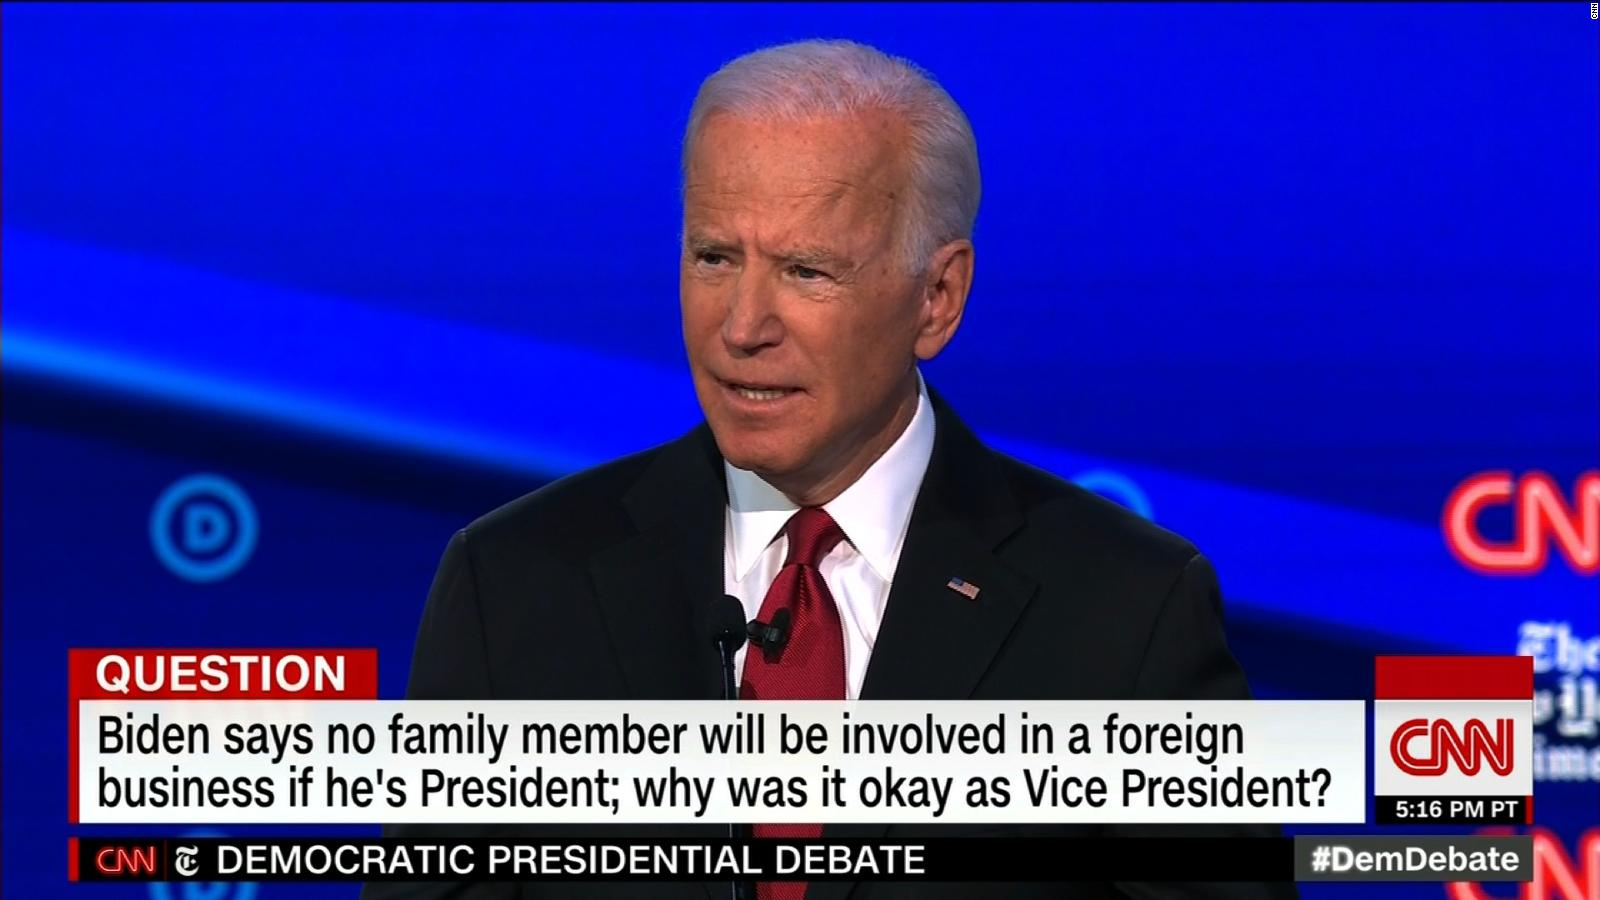 Joe Biden Says His Children Are Not Going To Have Offices In The White House If He S Elected Cnnpolitics